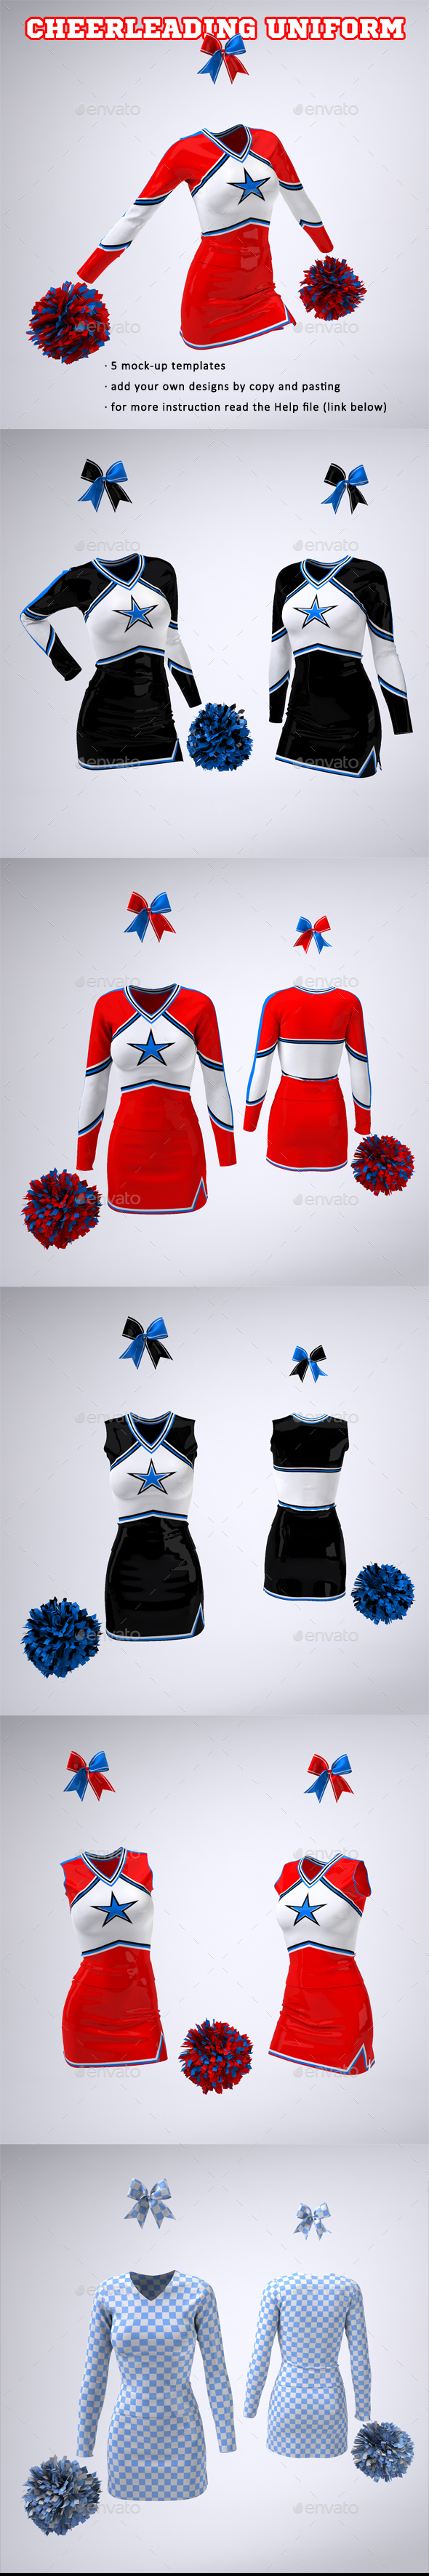 GraphicRiver Cheerleading Uniform Mock-Up 21015719